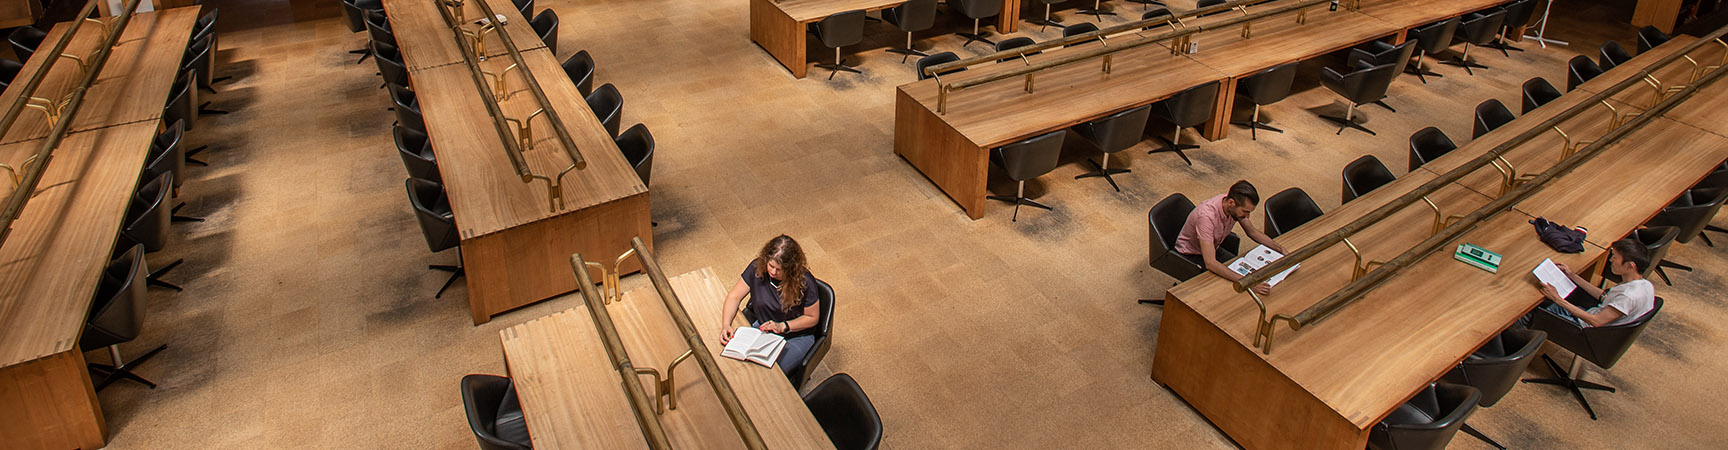 A birdseye view six long wooden desks, four students are scattered around reading at them